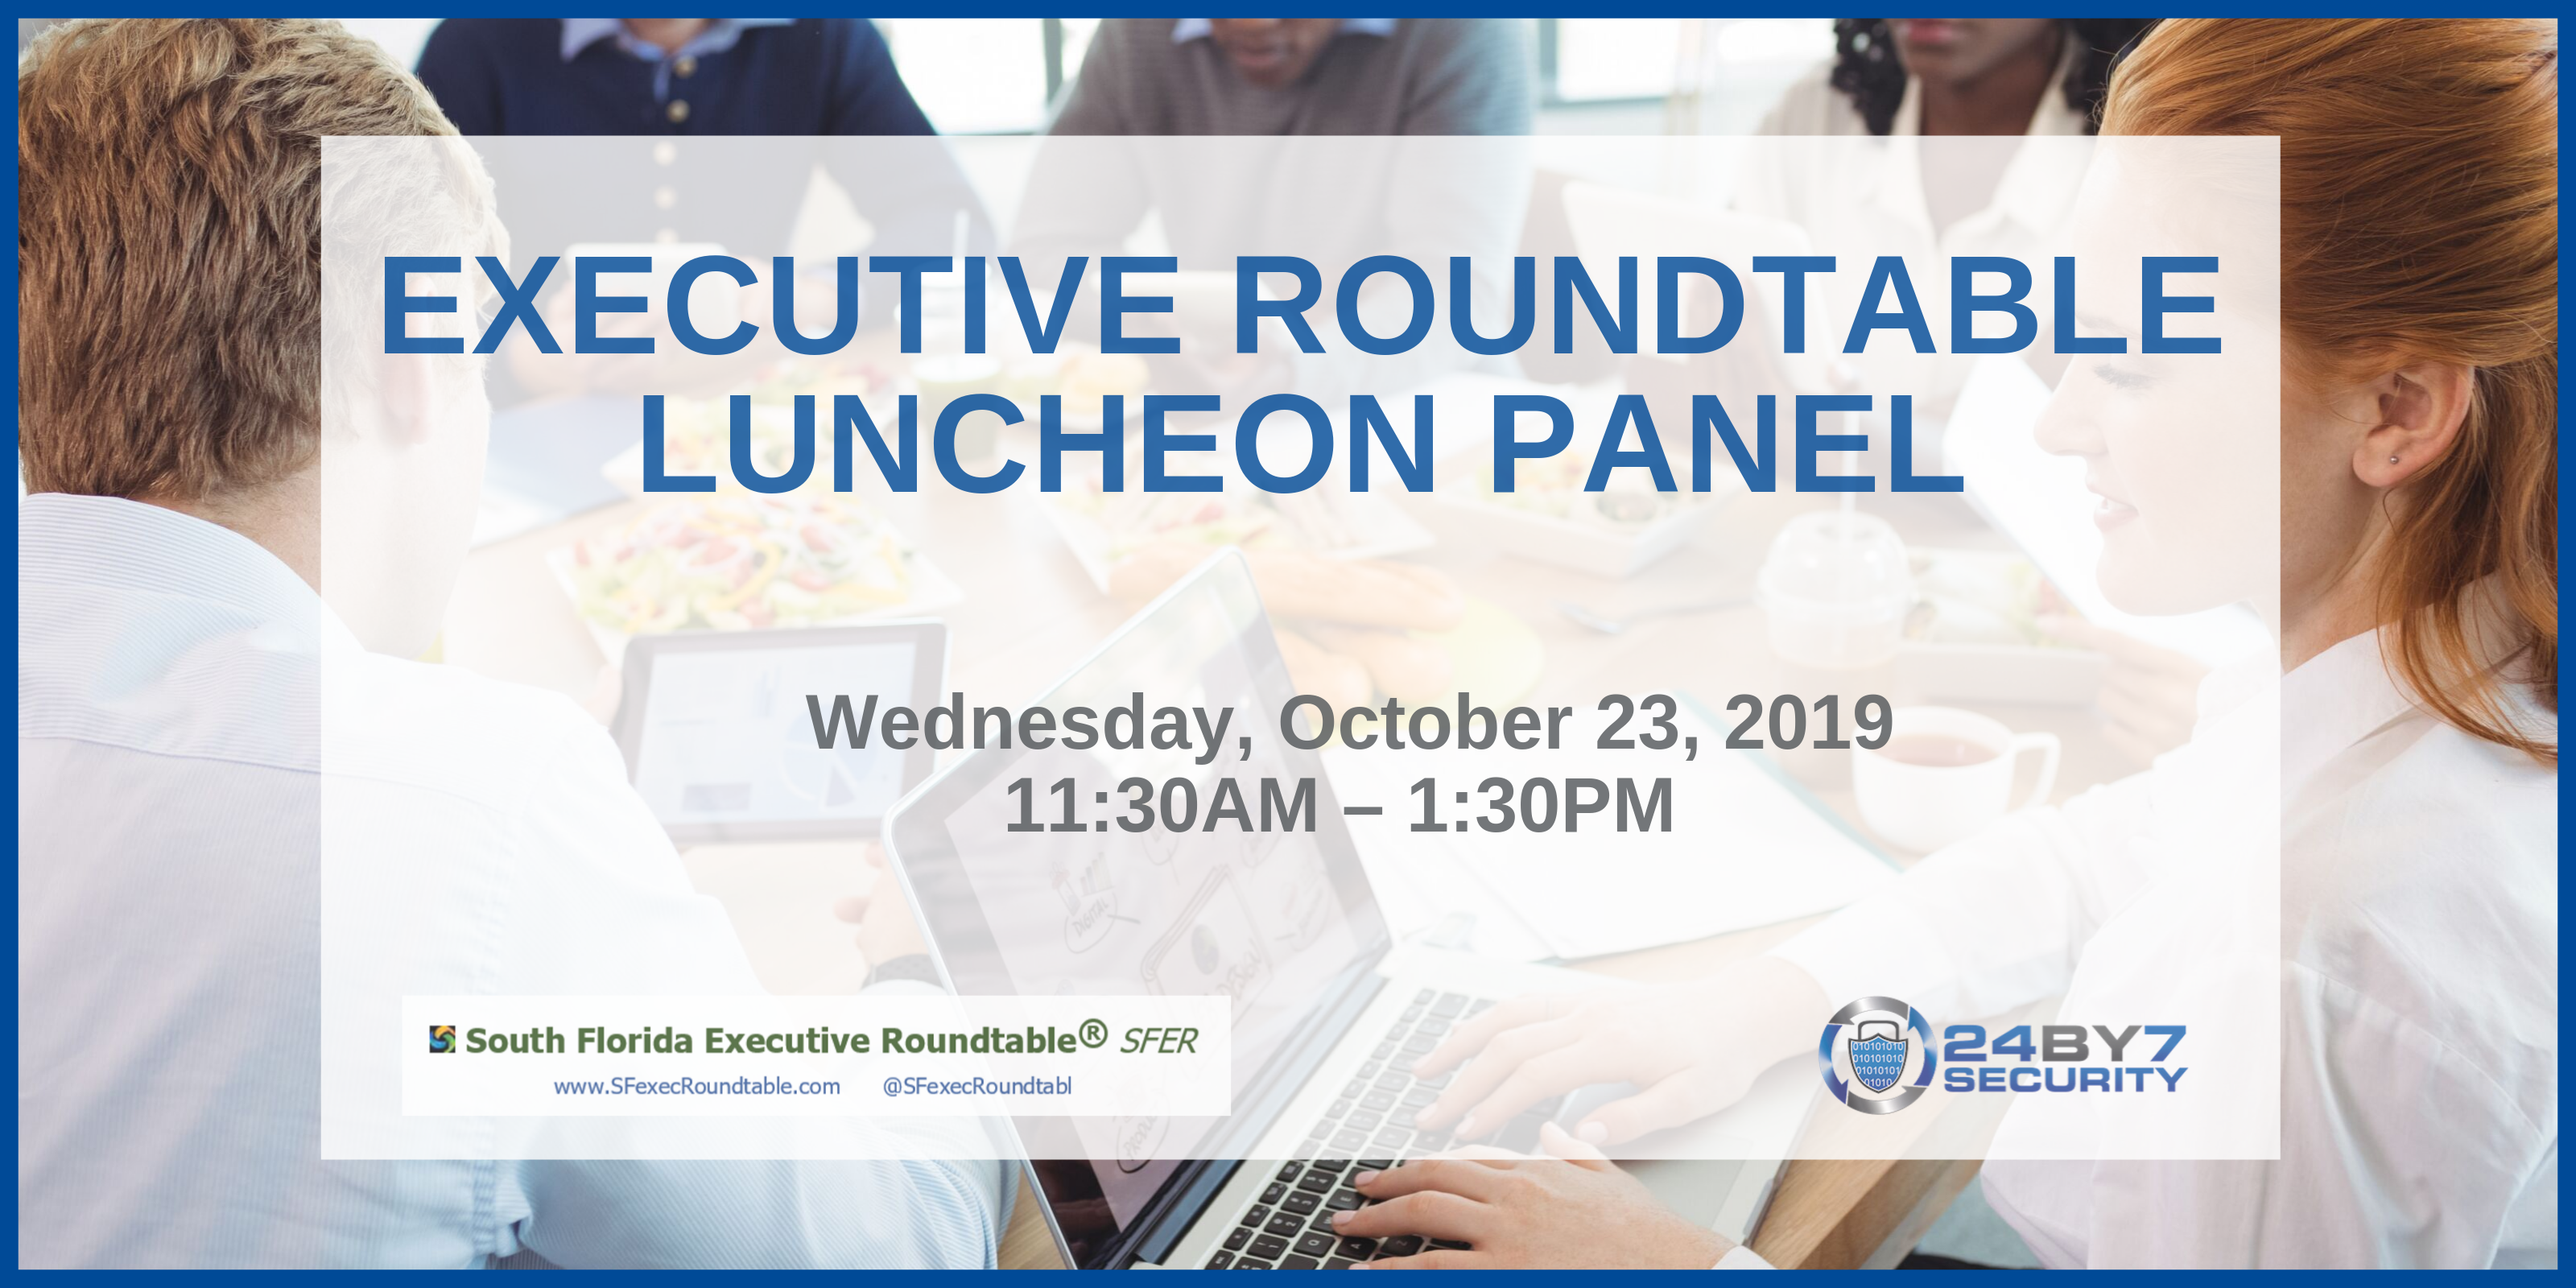 Executive round table, luncheon panel